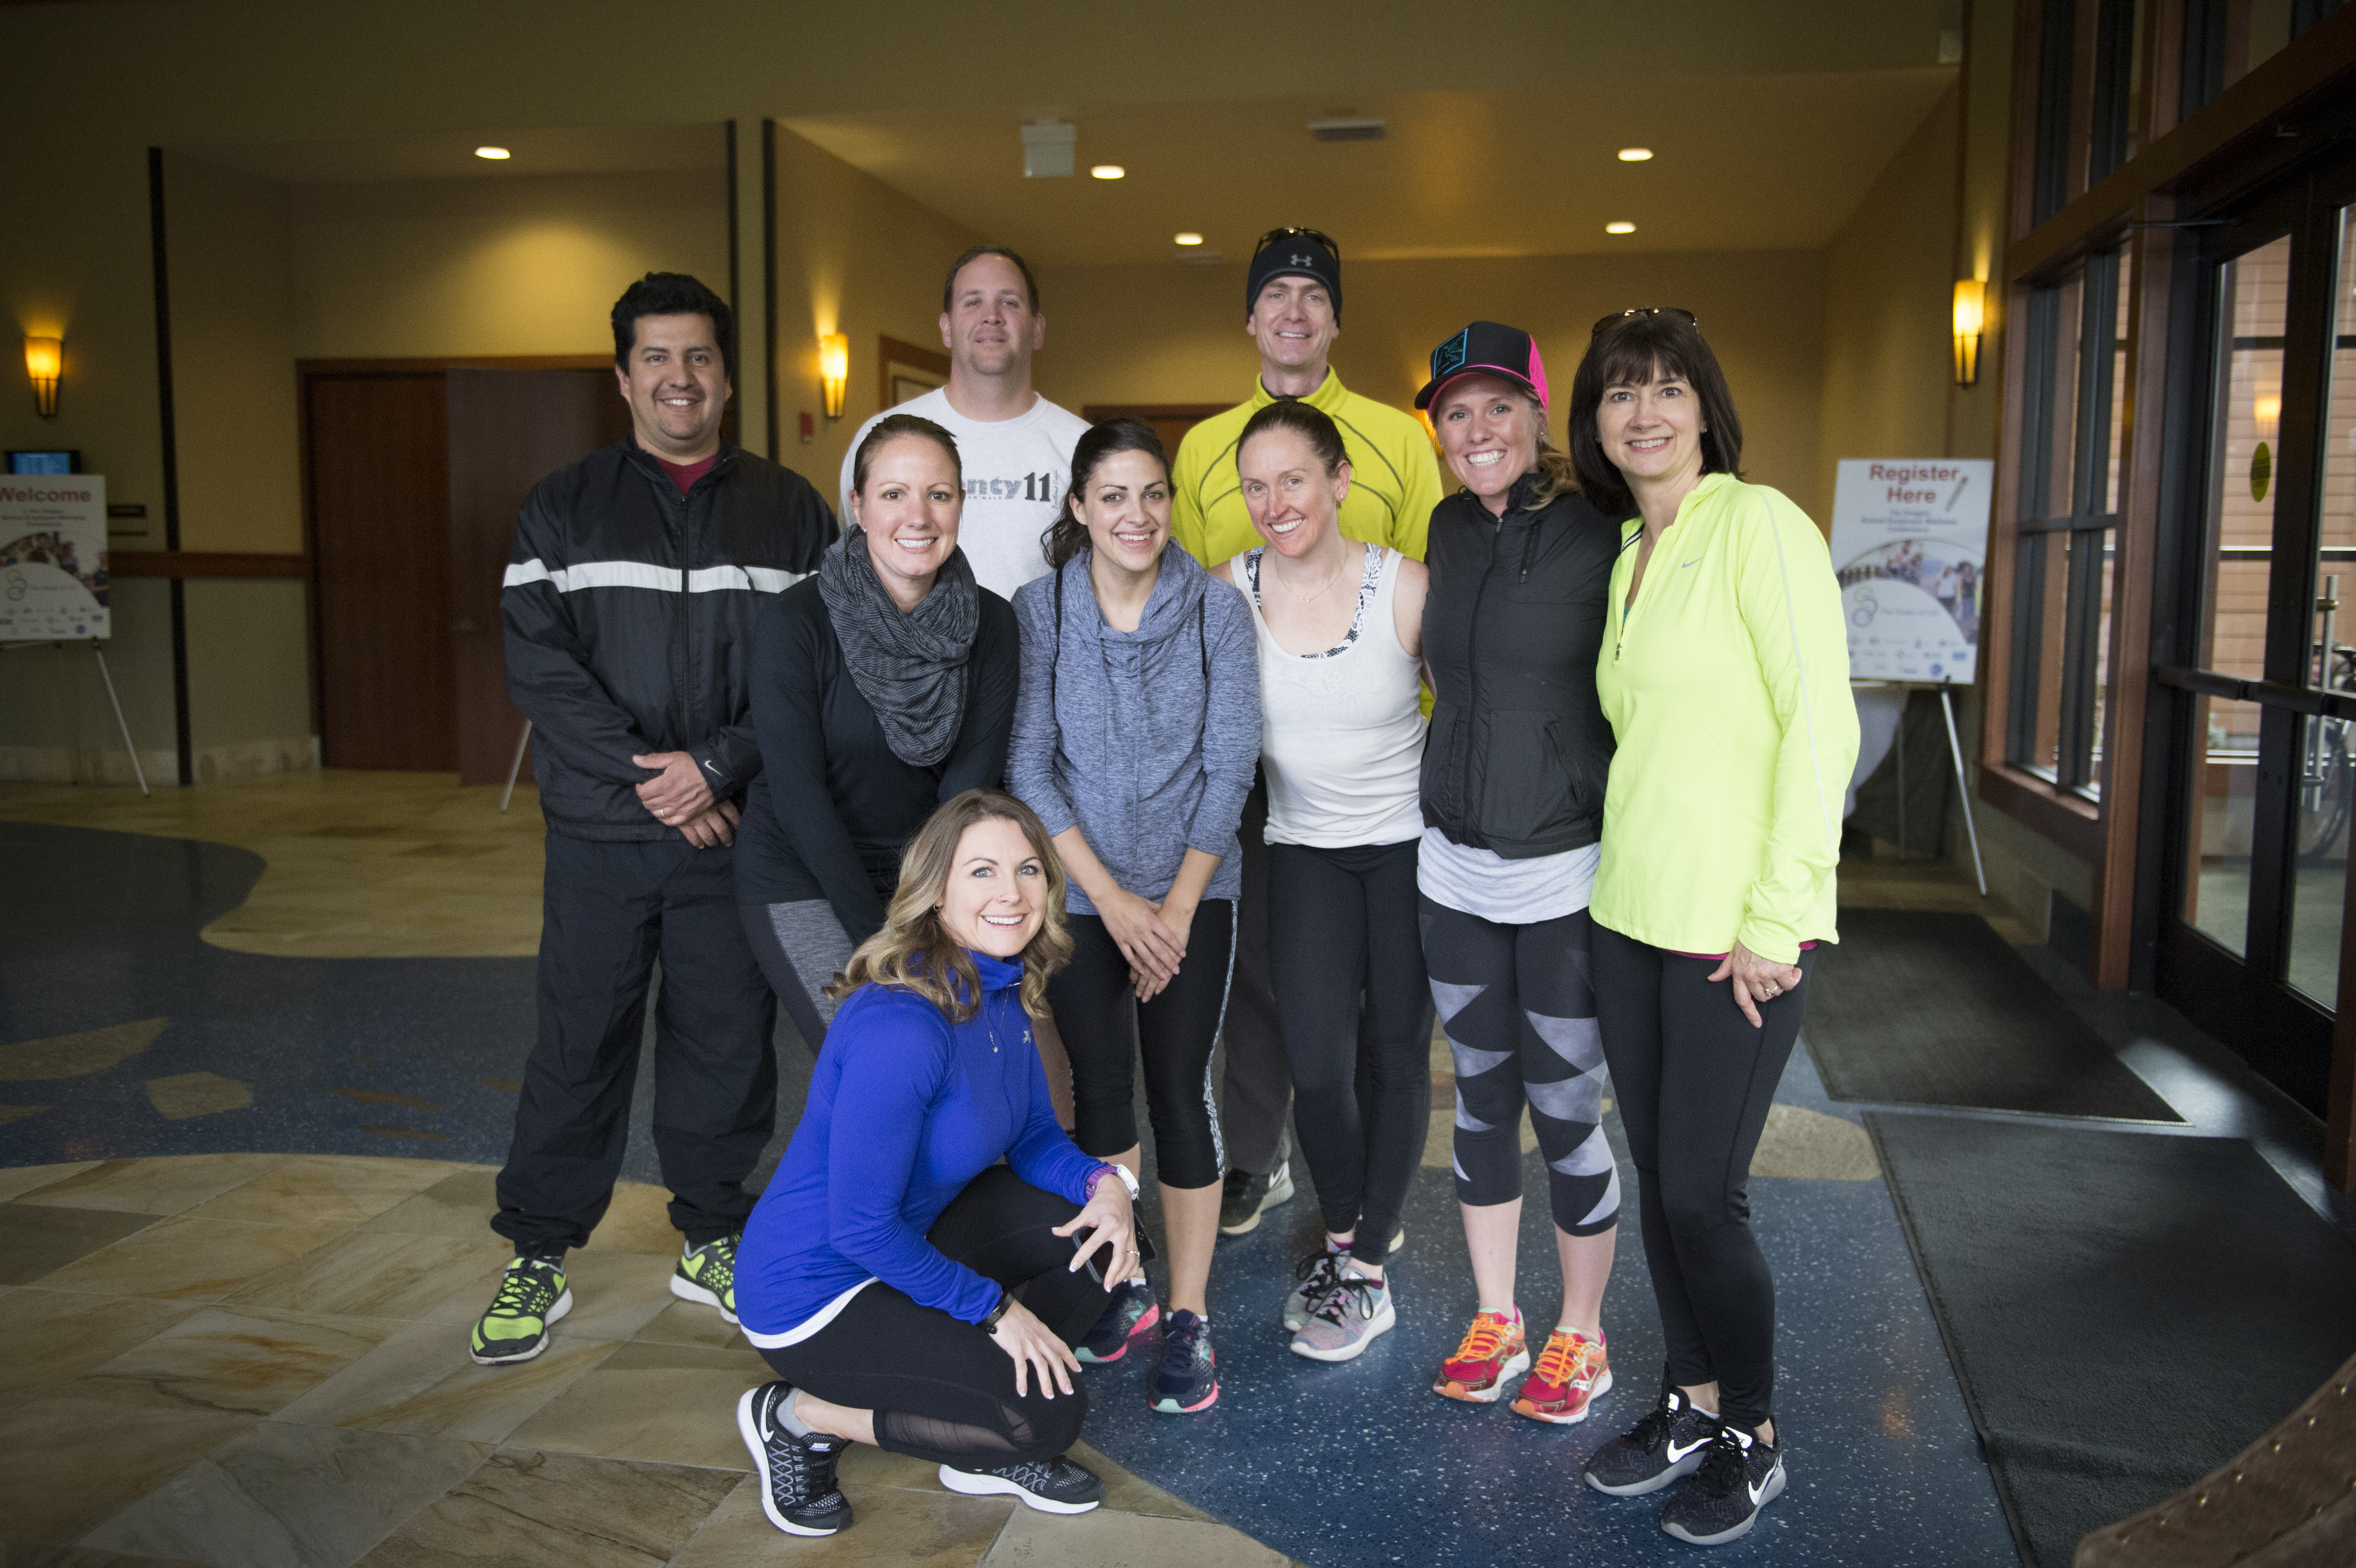 smiling group of people in workout gear posing